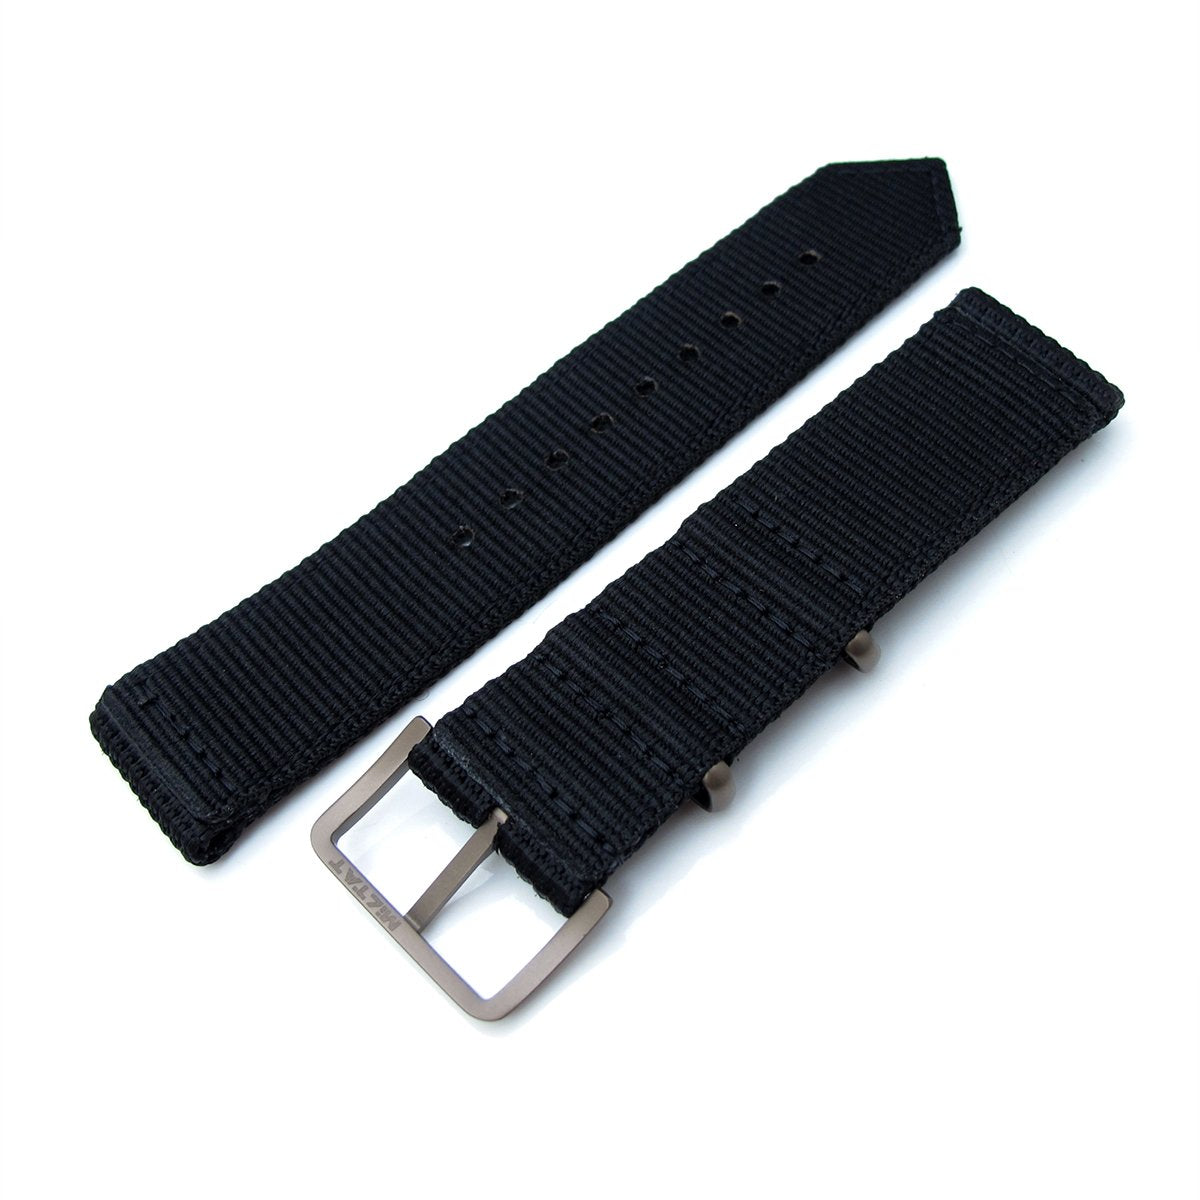 20mm 22mm Two Piece WW2 G10 Black 3D Nylon IP Bronze Buckle Strapcode Watch Bands